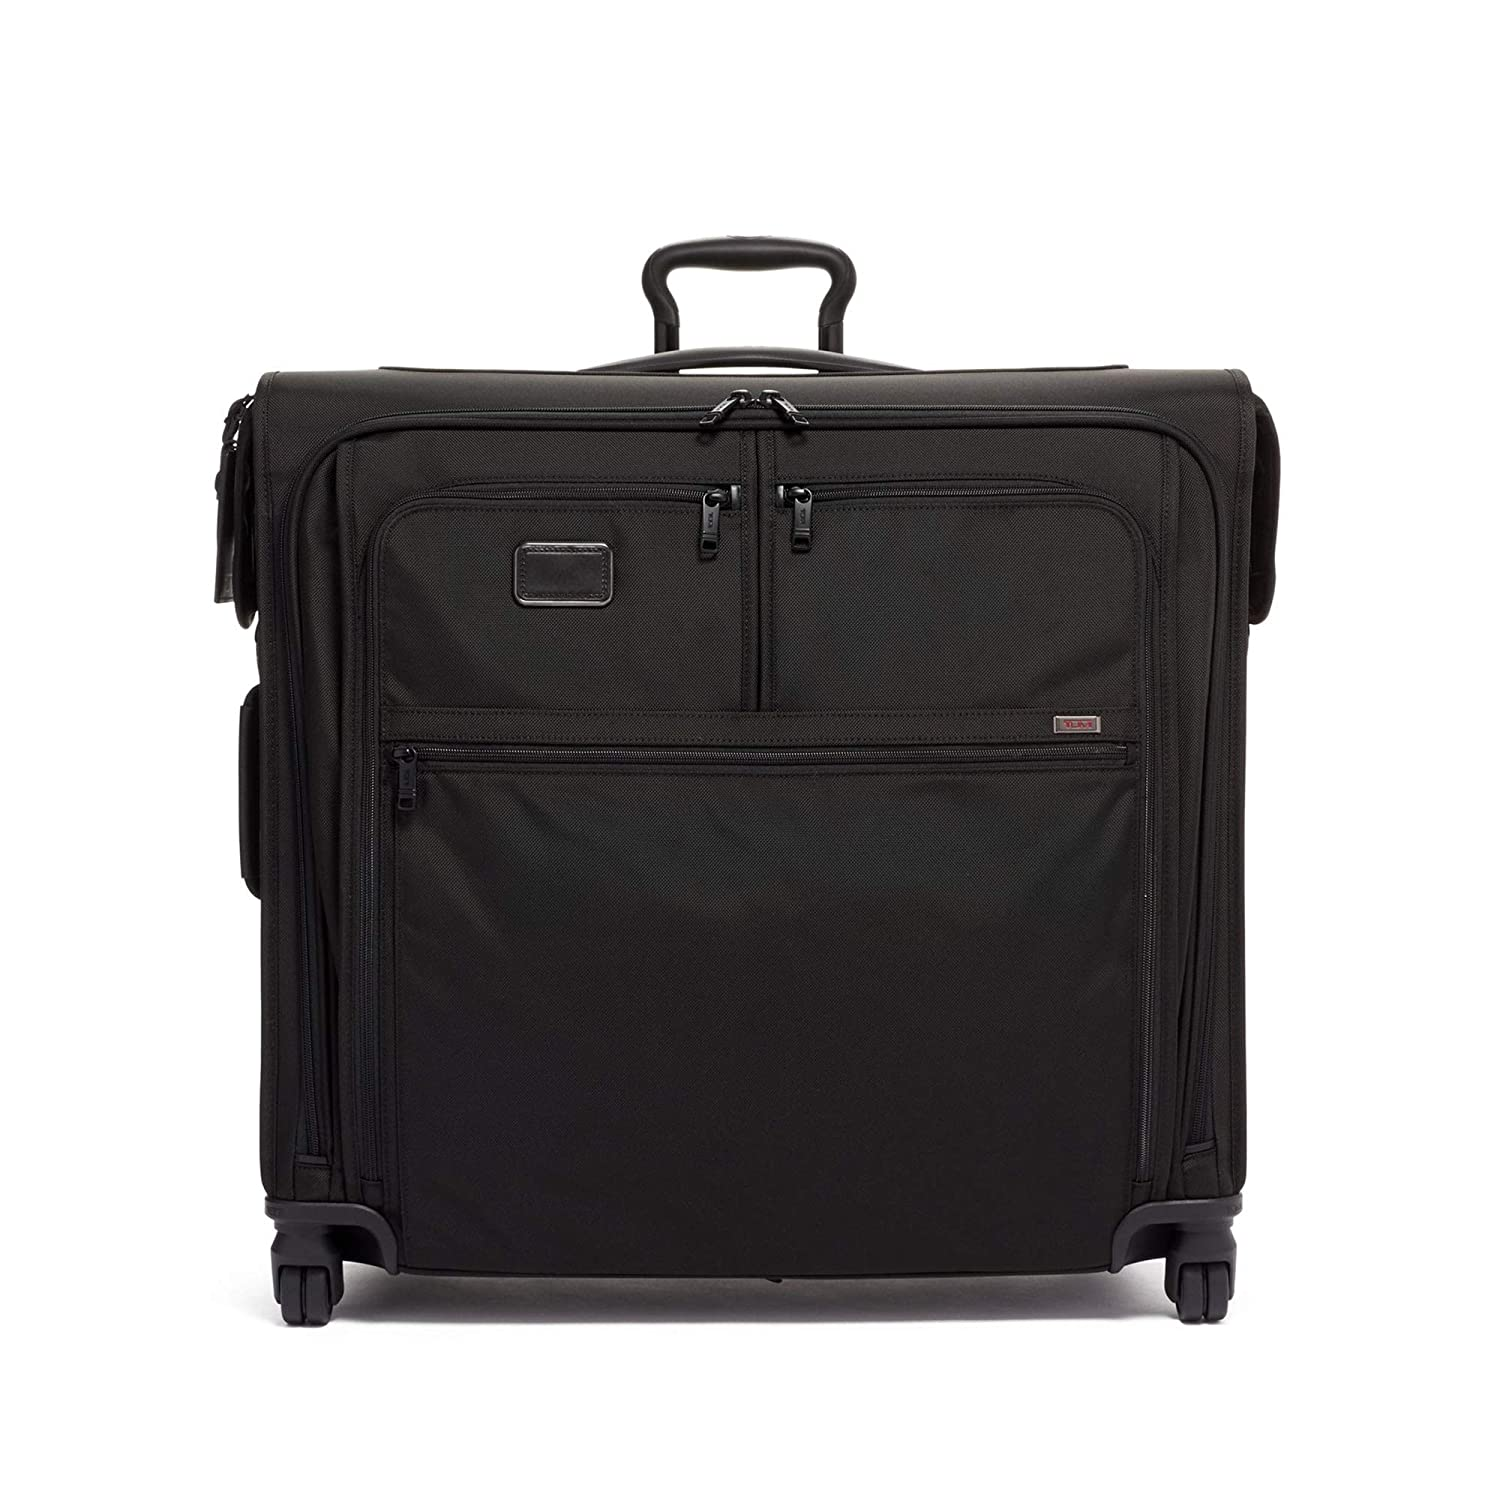 4dff39bba Amazon.com | TUMI - Alpha 3 Extended Trip 4 Wheeled Garment Bag - Dress or  Suit Bag for Men and Women - Black | Garment Bags